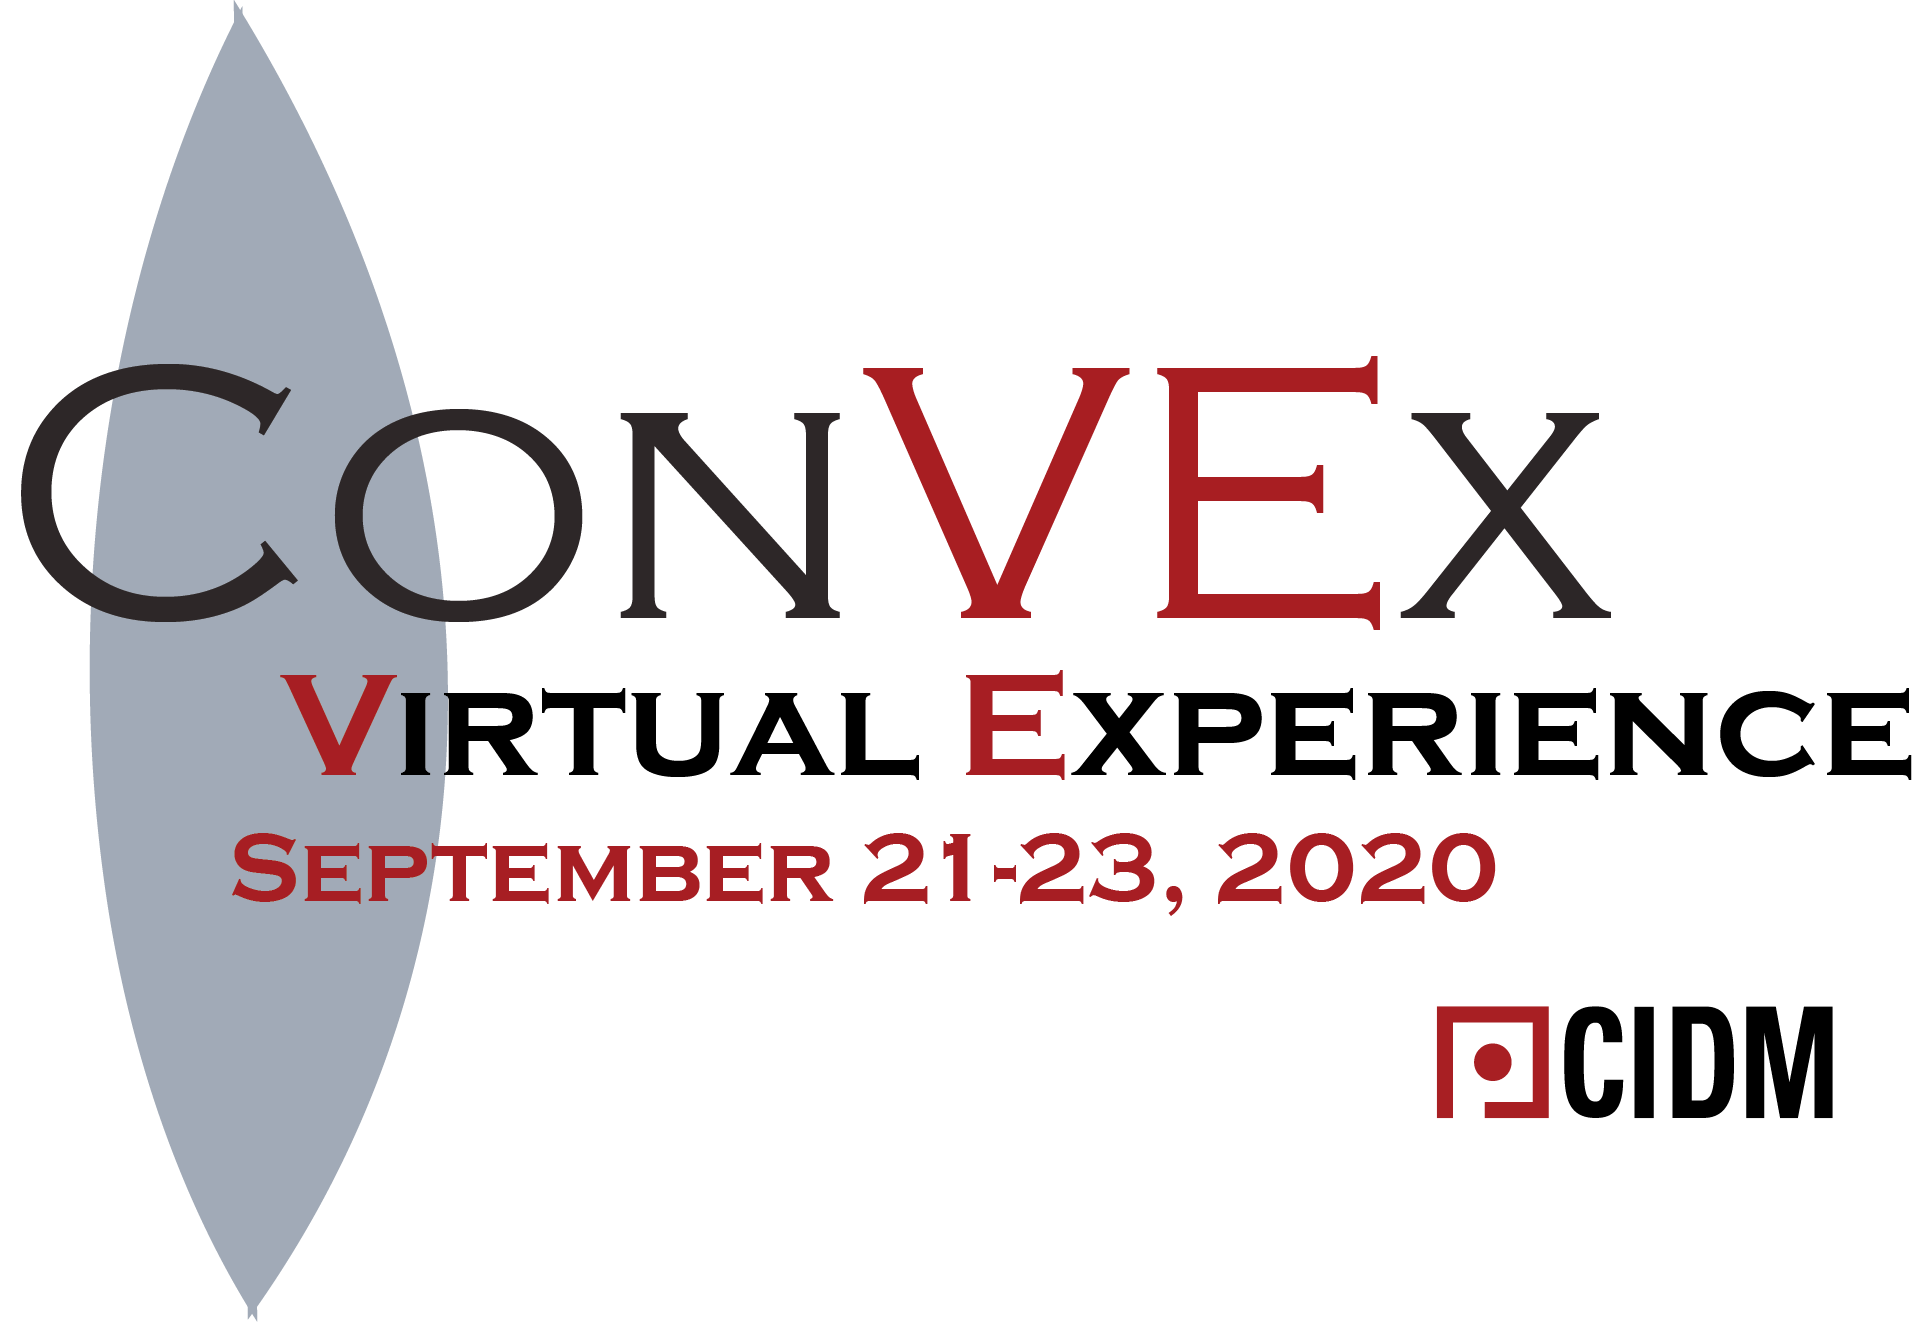 ConVex 2020 Virtual Conference Logo